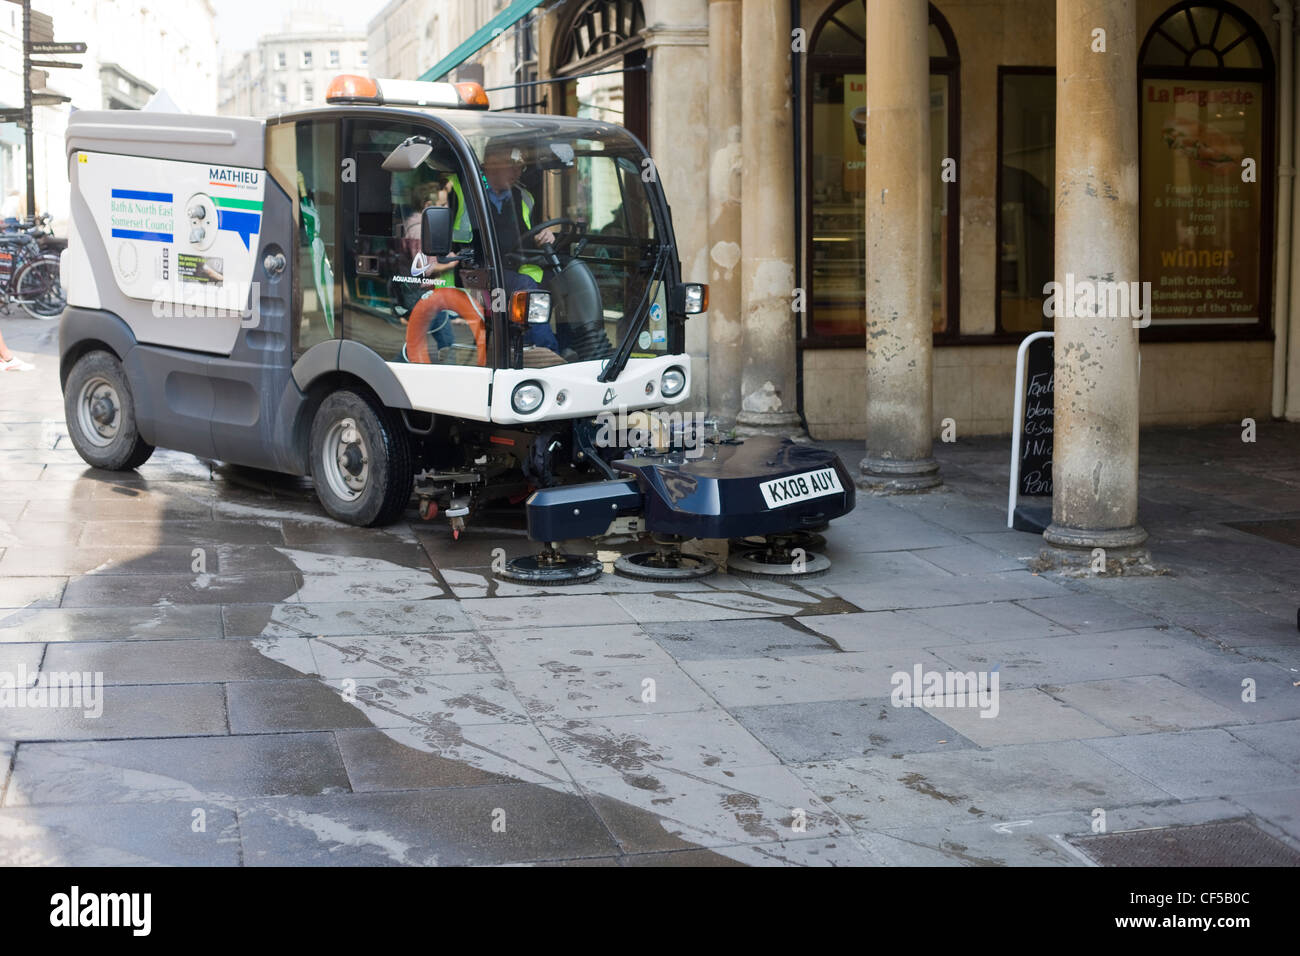 Street cleaning machine sweeping the pavement in Bath city centre, Somerset Stock Photo